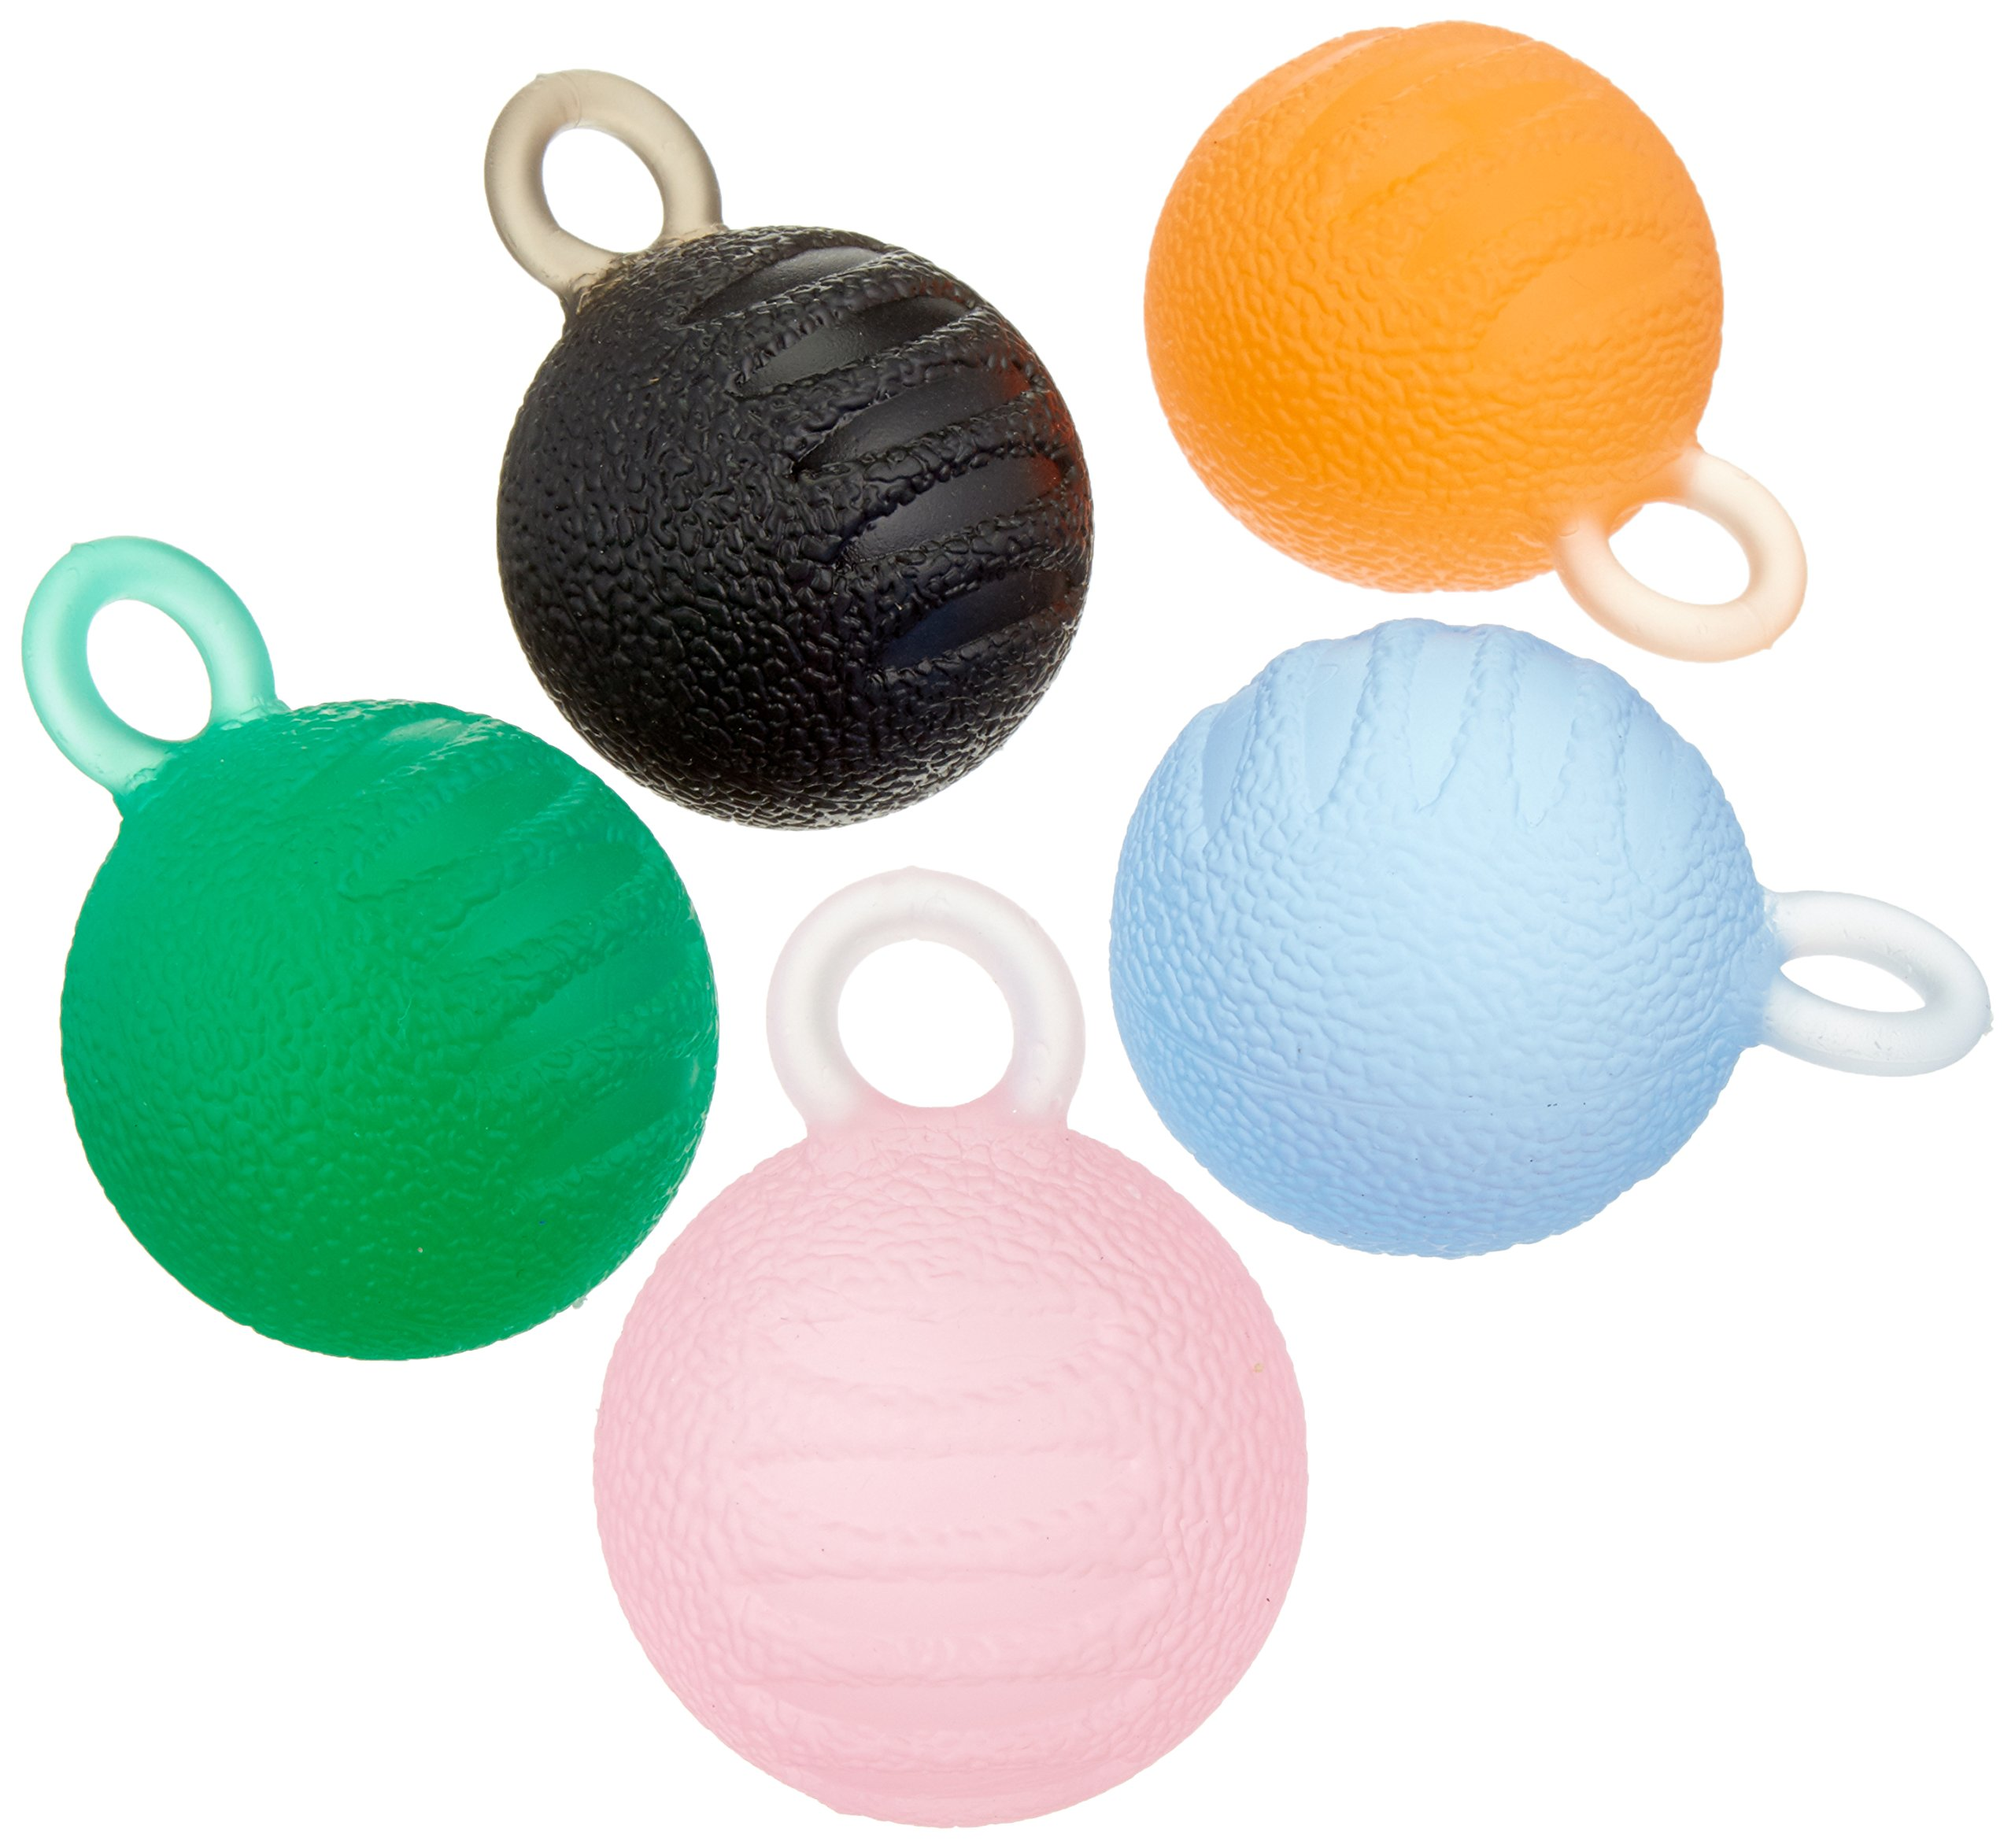 Sammons Preston Hand Exercisers with Loops, Set of Five Exercise Balls for Finger & Thumb Strength, Physical Therapy, & Hand Rehabilitation, Easy to Squeeze Stress Ball for Strengthening Exercises